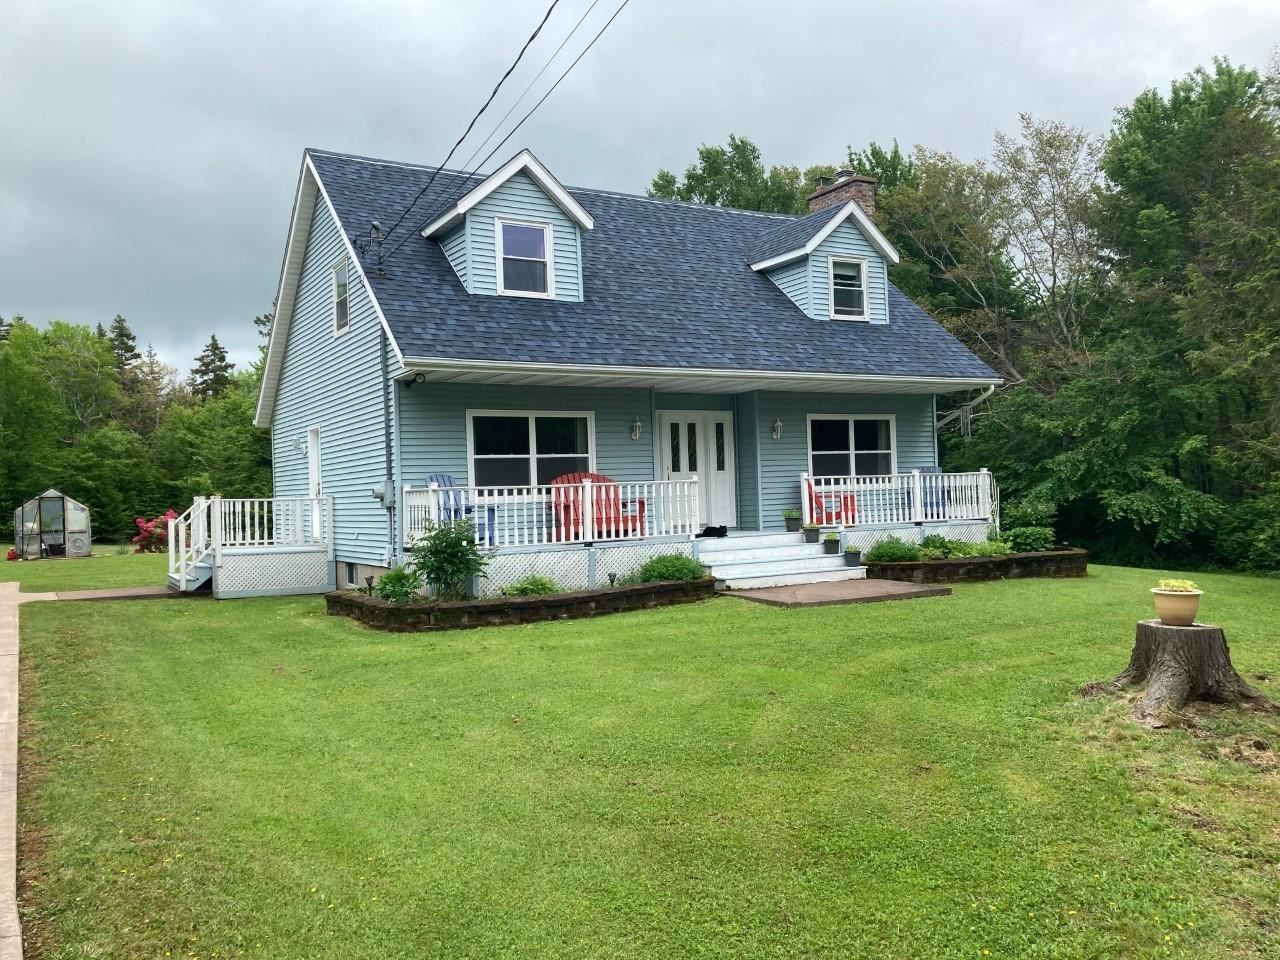 Main Photo: 696 Chance Harbour Road in Chance Harbour: 108-Rural Pictou County Residential for sale (Northern Region)  : MLS®# 202115814